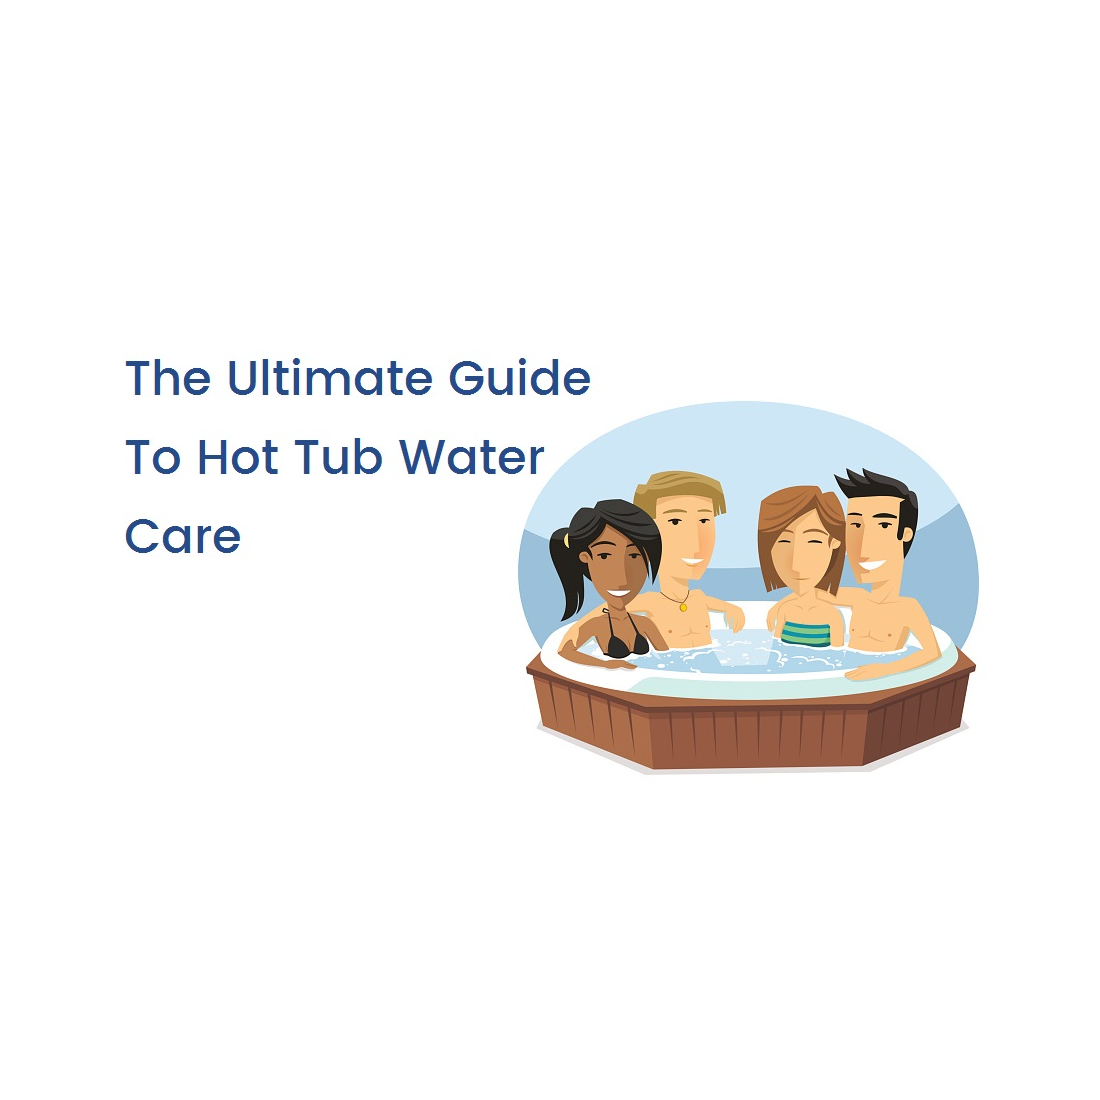 5 Tips: Guide To Hot Tub Water Care